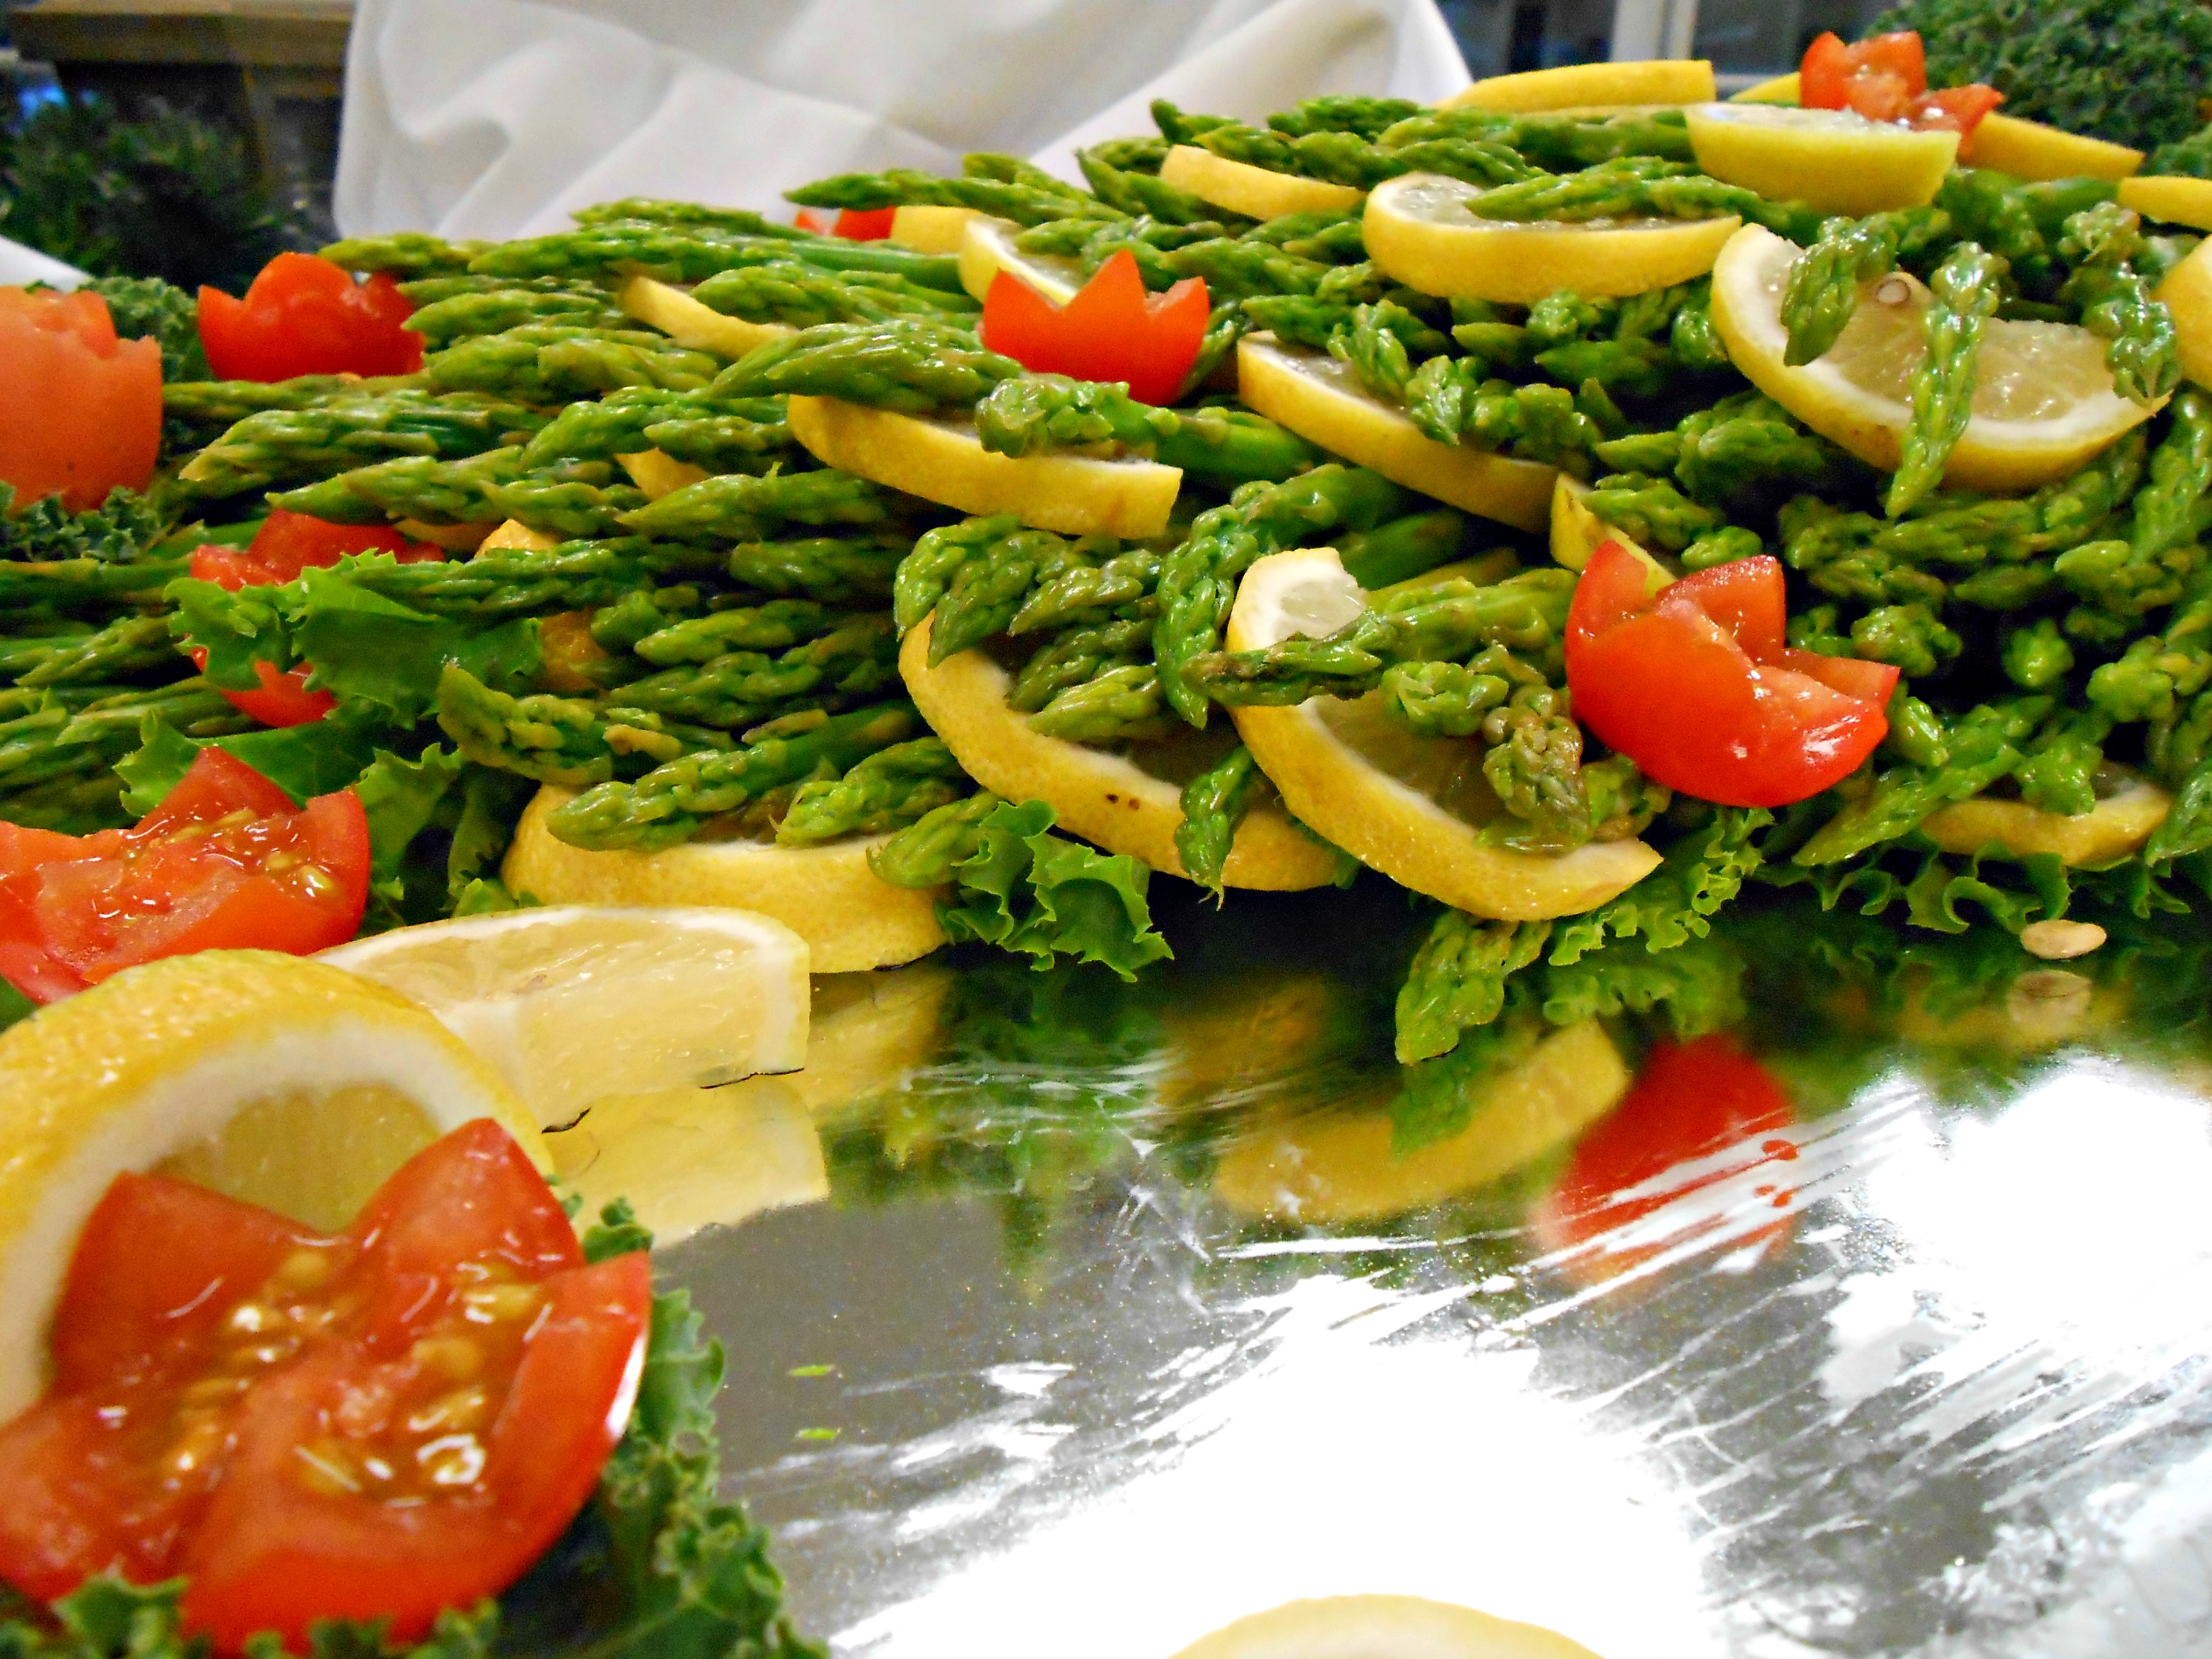 Blanched Asparagus with Almond Dip